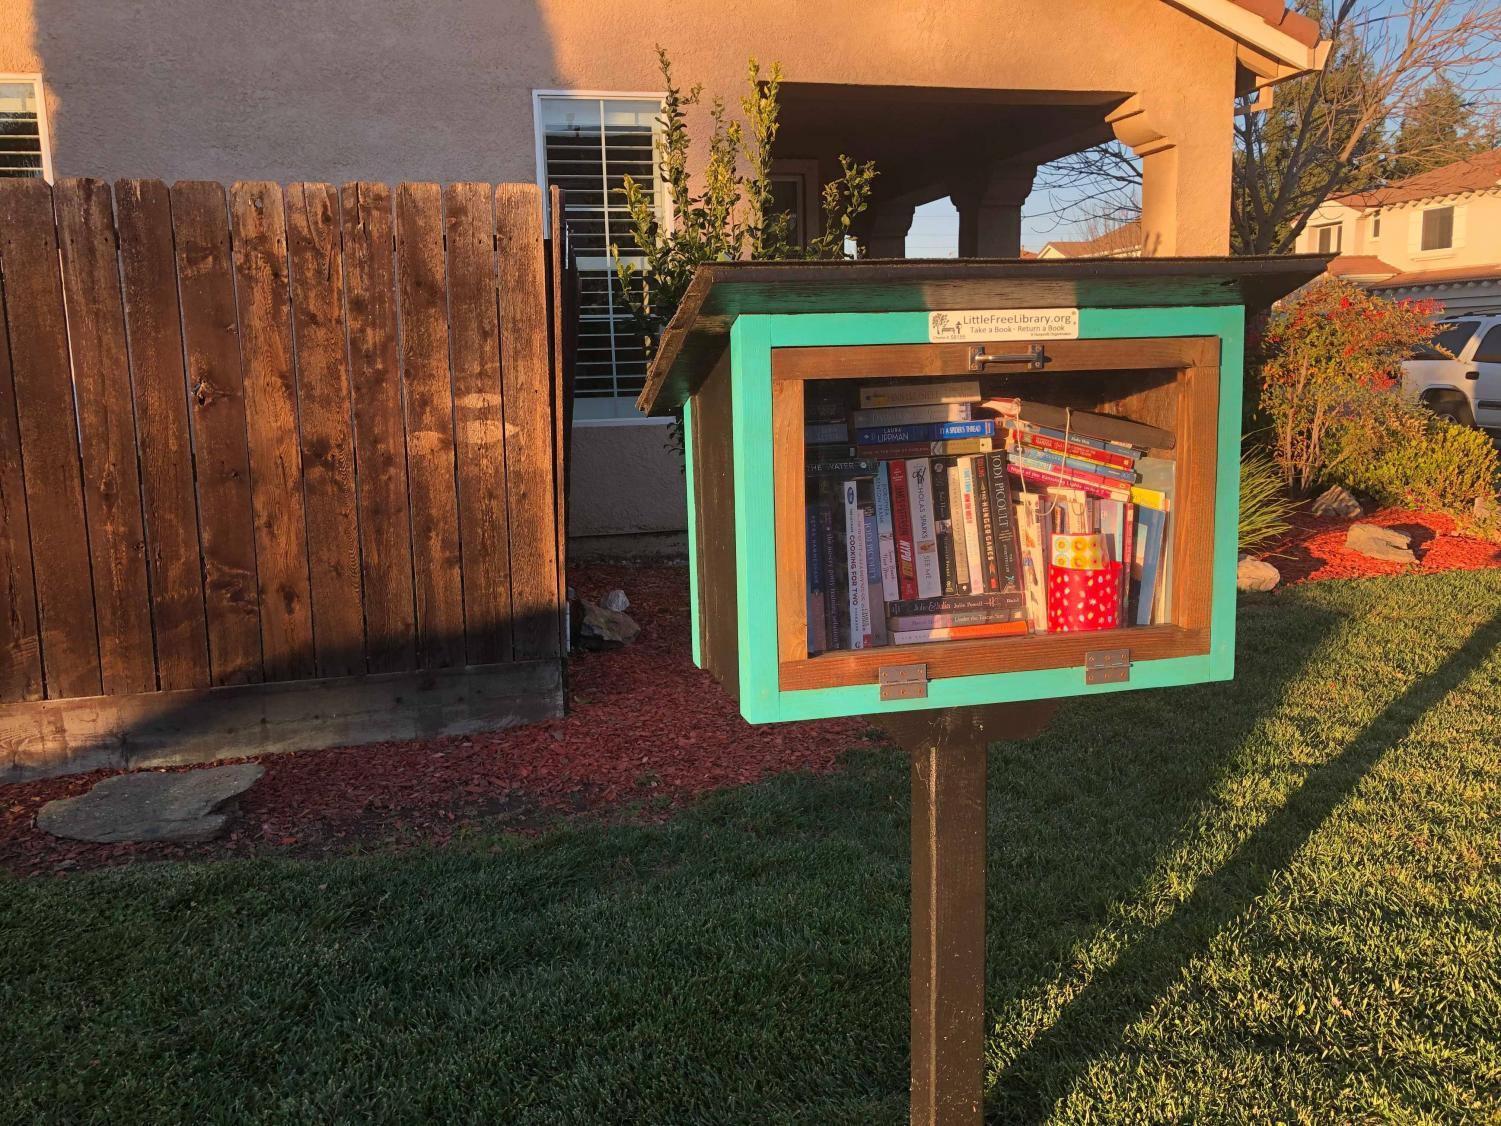 Little Free Library stands at the corner of Chantilly and Colbert street